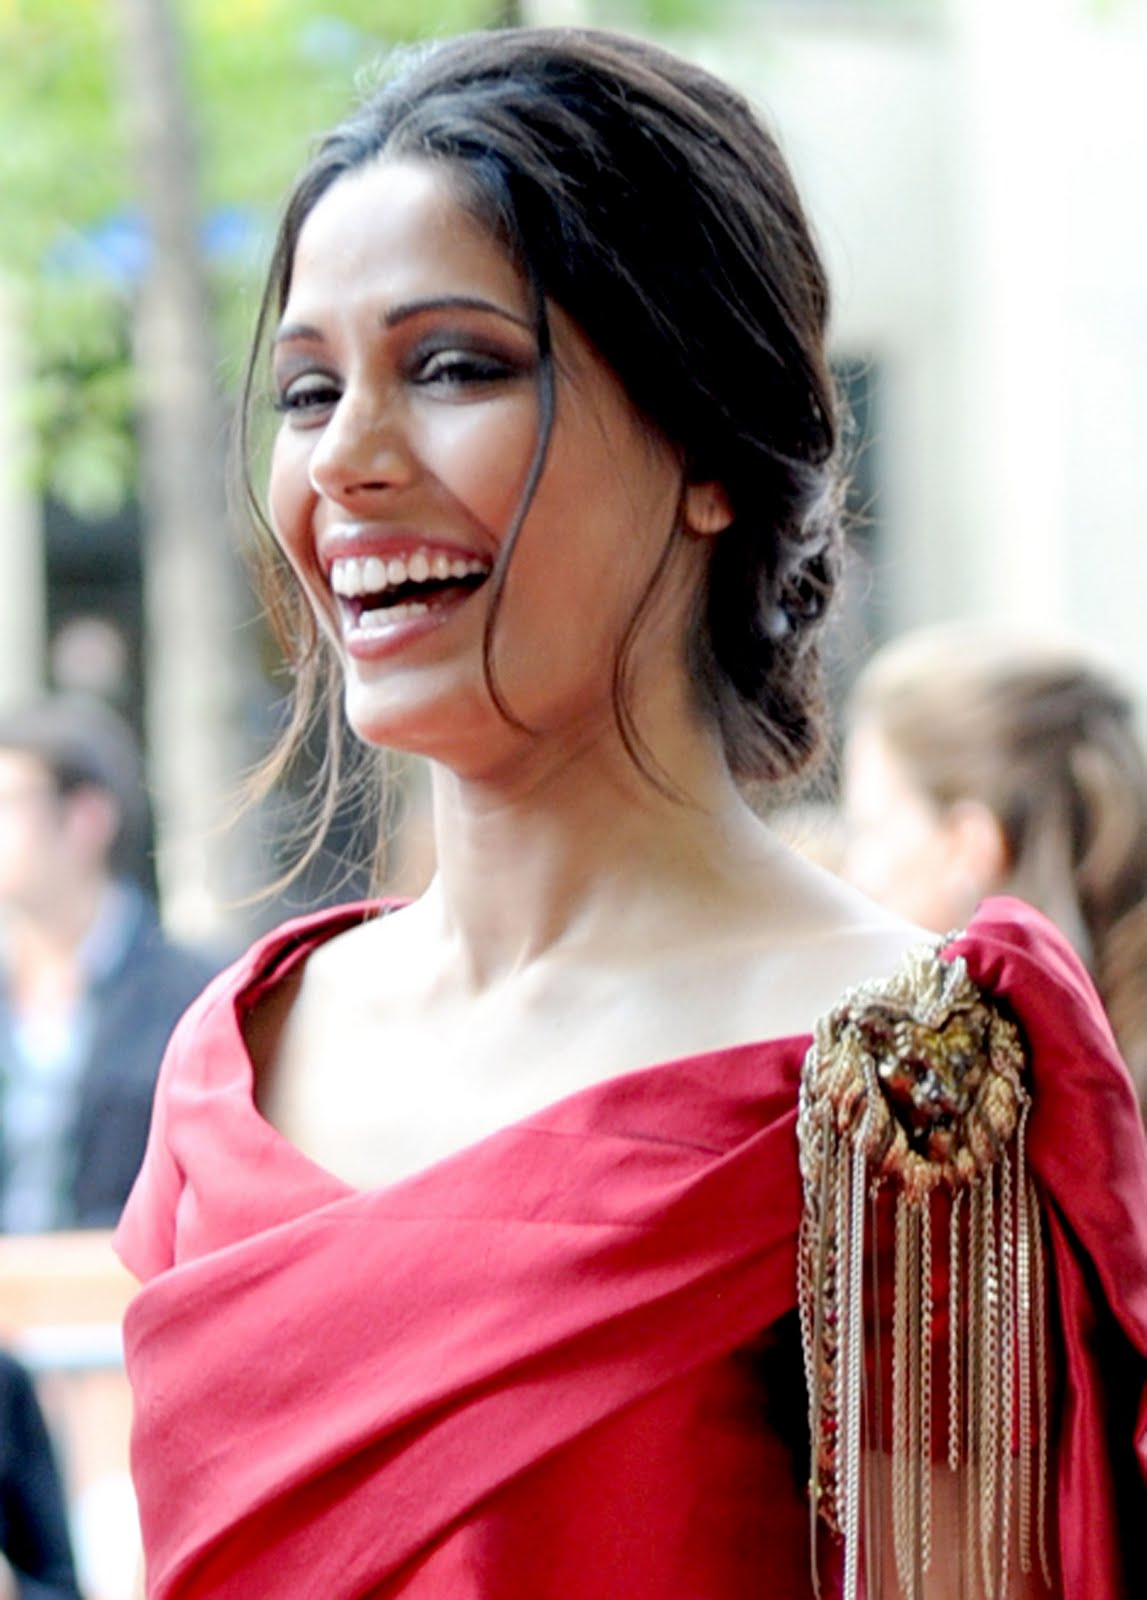 Hacked Freida Pinto nudes (32 foto and video), Ass, Leaked, Feet, cleavage 2015